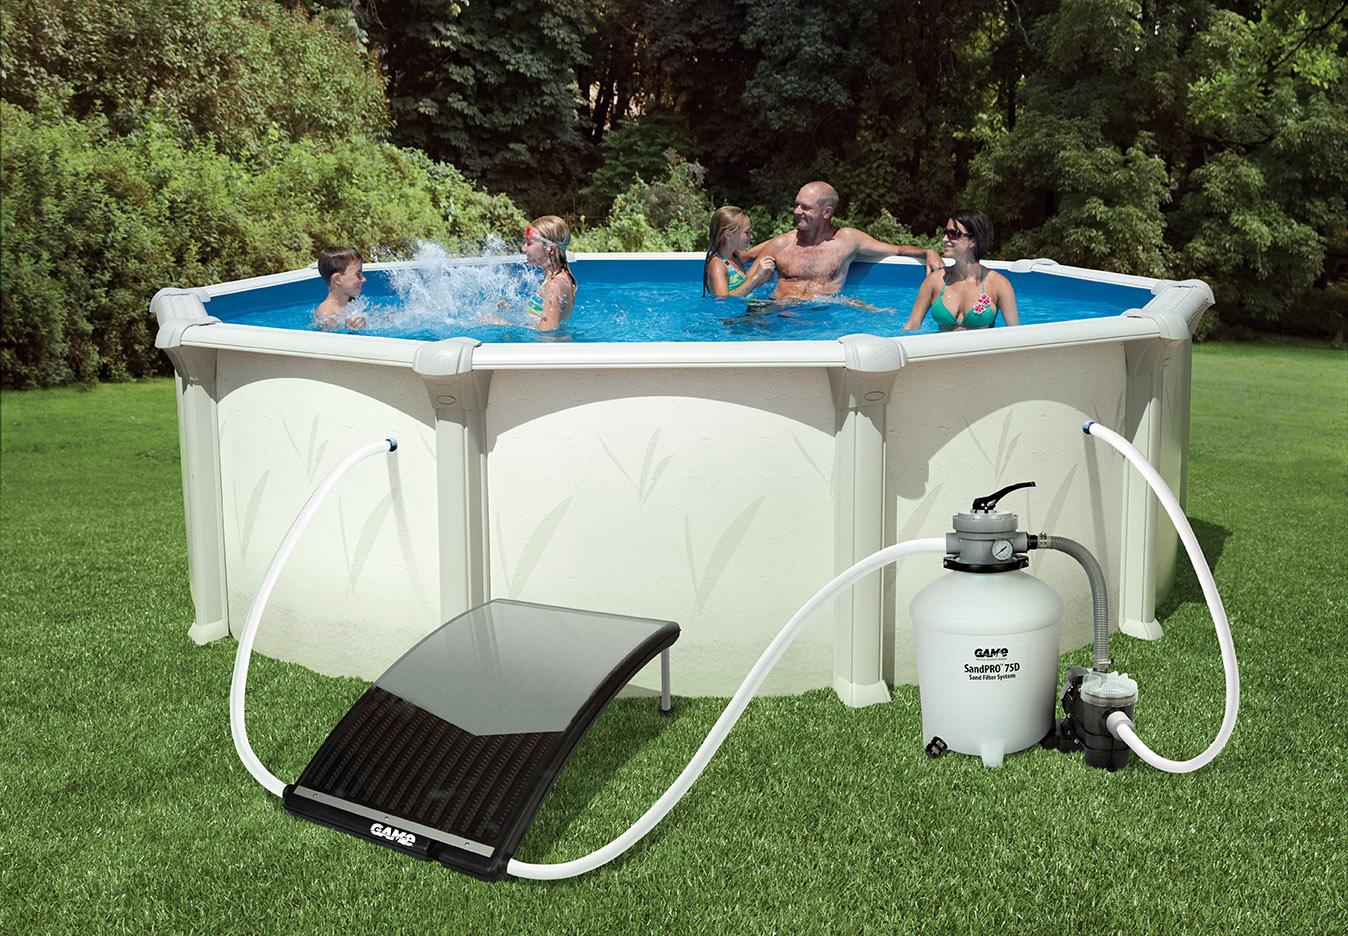 Game 4721 solarpro curve solar pool heater for Top of the line above ground pools